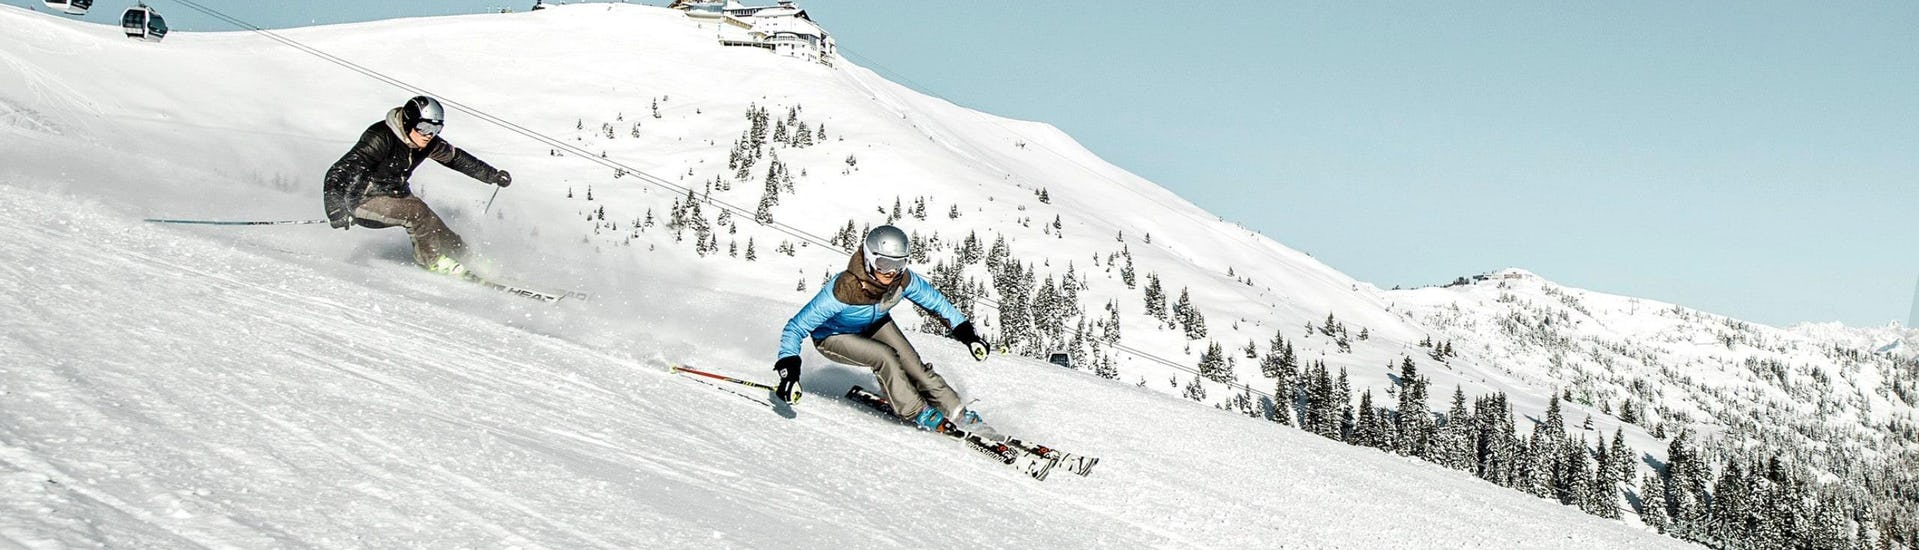 Two skiers are skiing down the ski slopes of the Schmittenhöhe mountain in Zell am See, a popular Austrian ski resort where local ski schools offer ski lessons to all those who want to learn to ski.